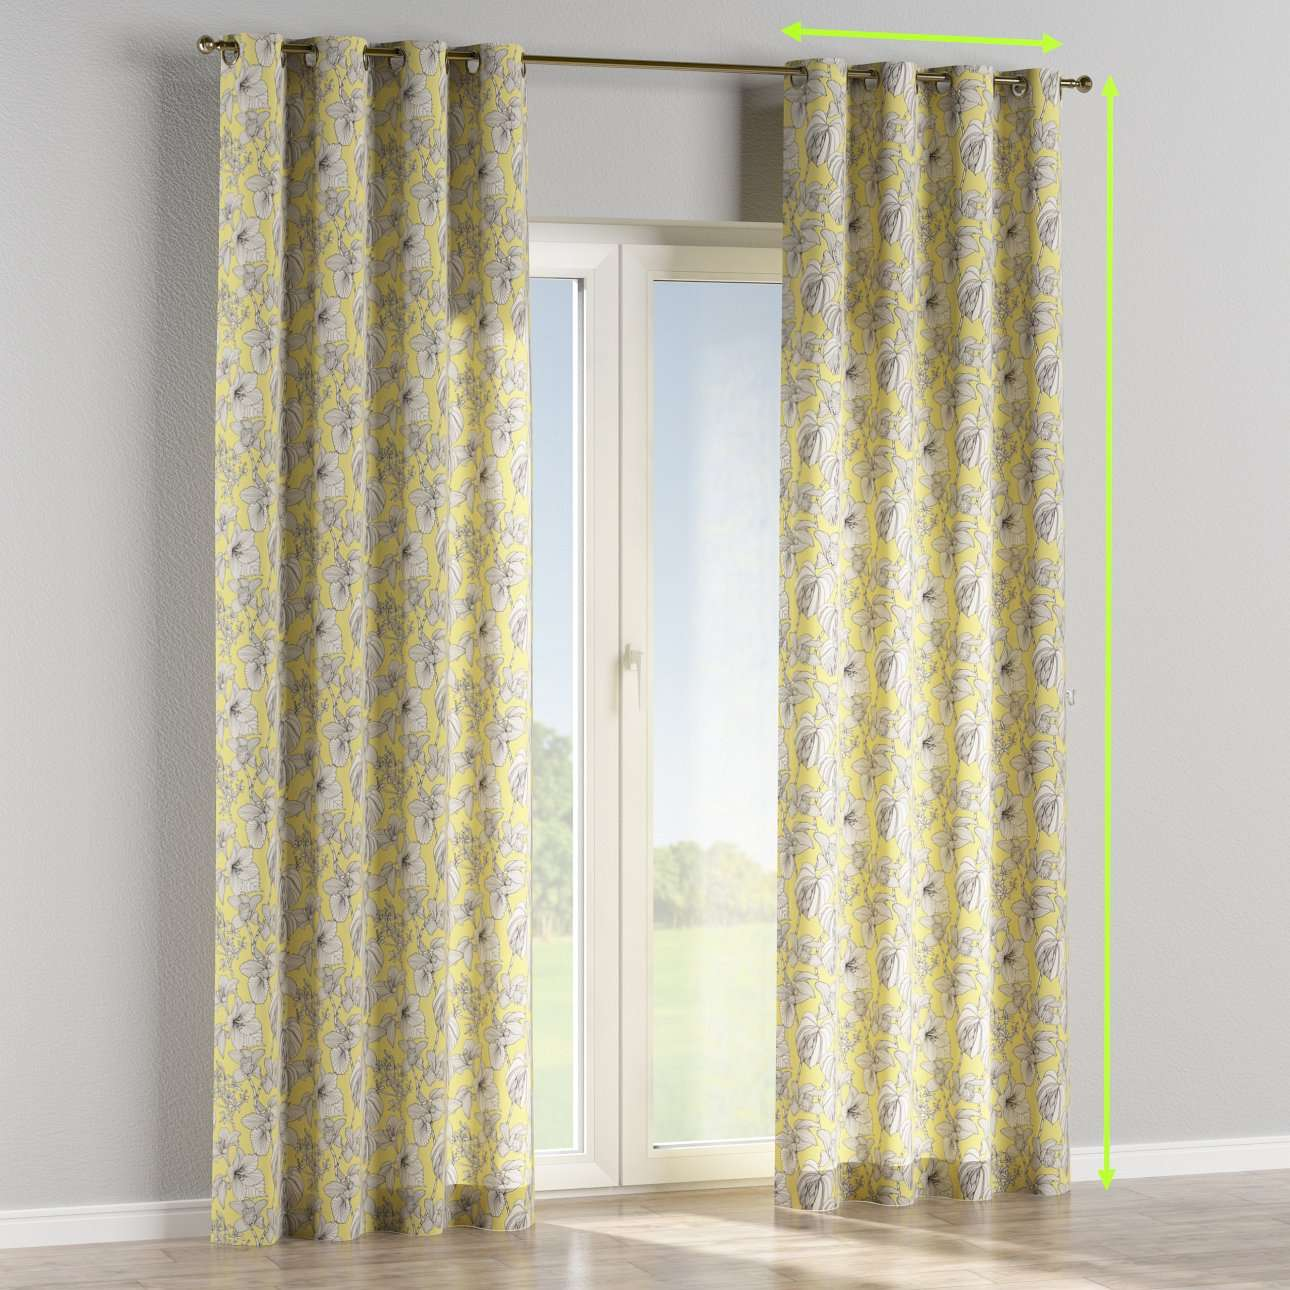 Eyelet lined curtains in collection Brooklyn, fabric: 137-78